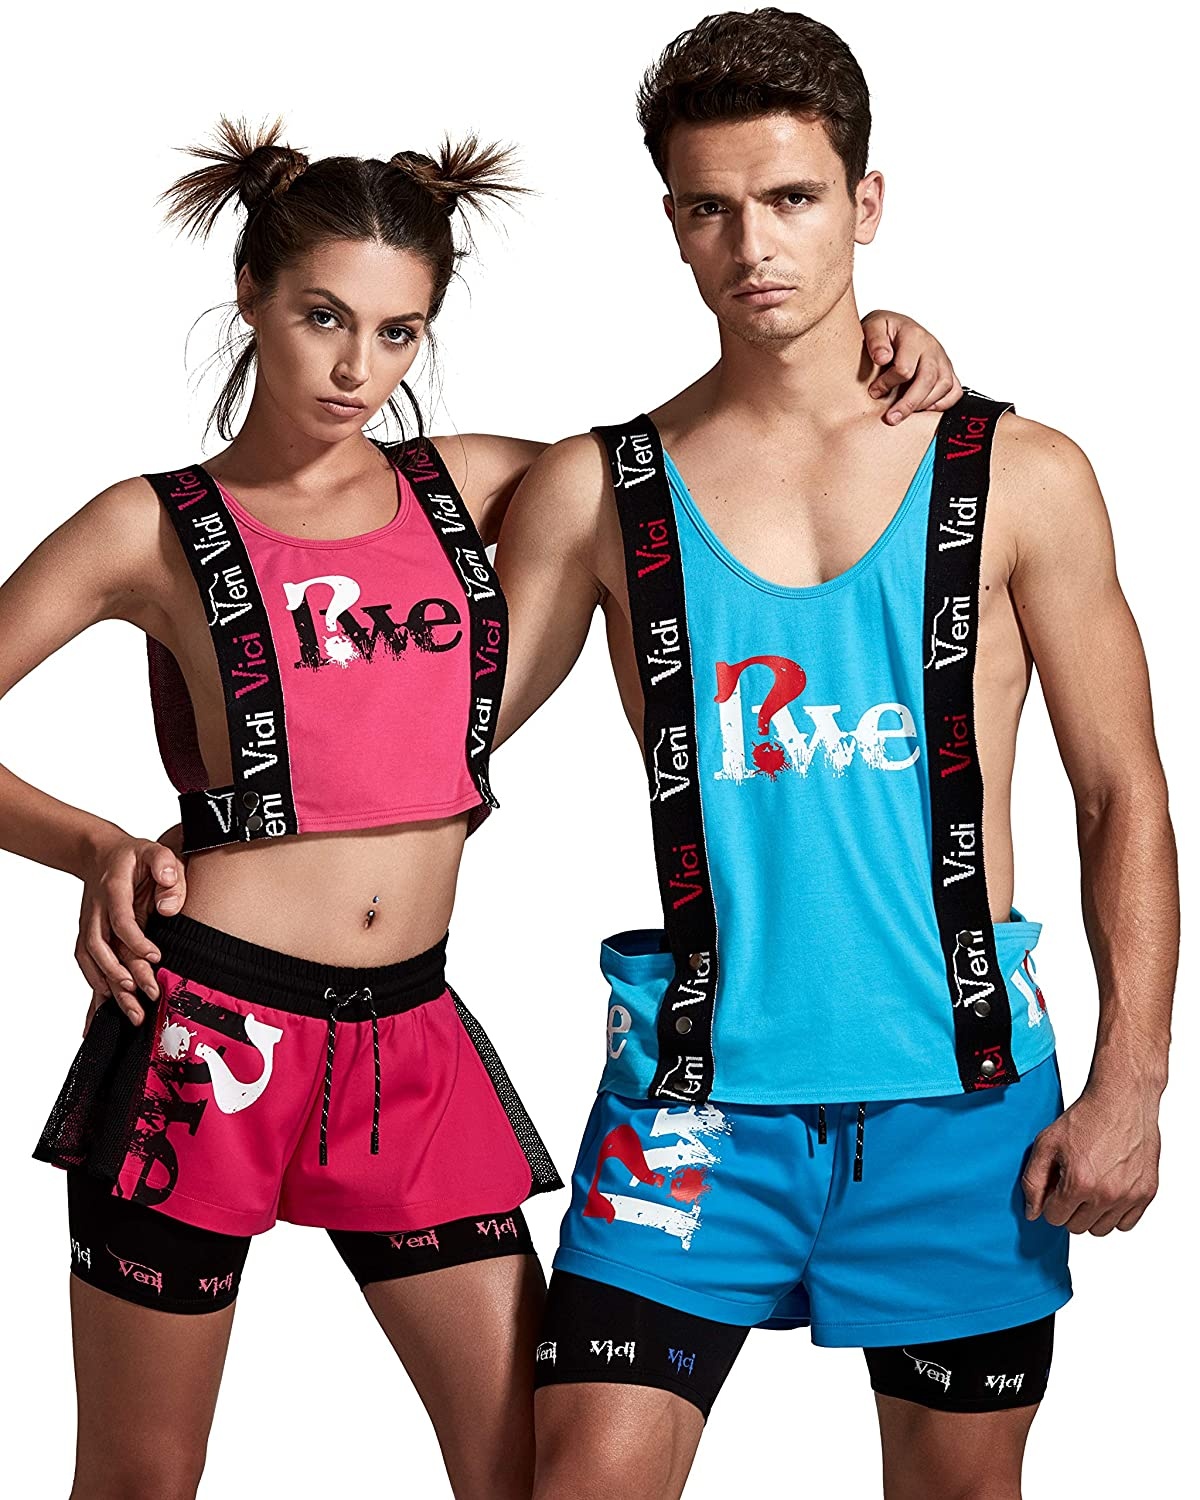 Vest|Workout Clothes|Gladiator Style|2 Colors RWE Mens Activewear|Gym Shorts